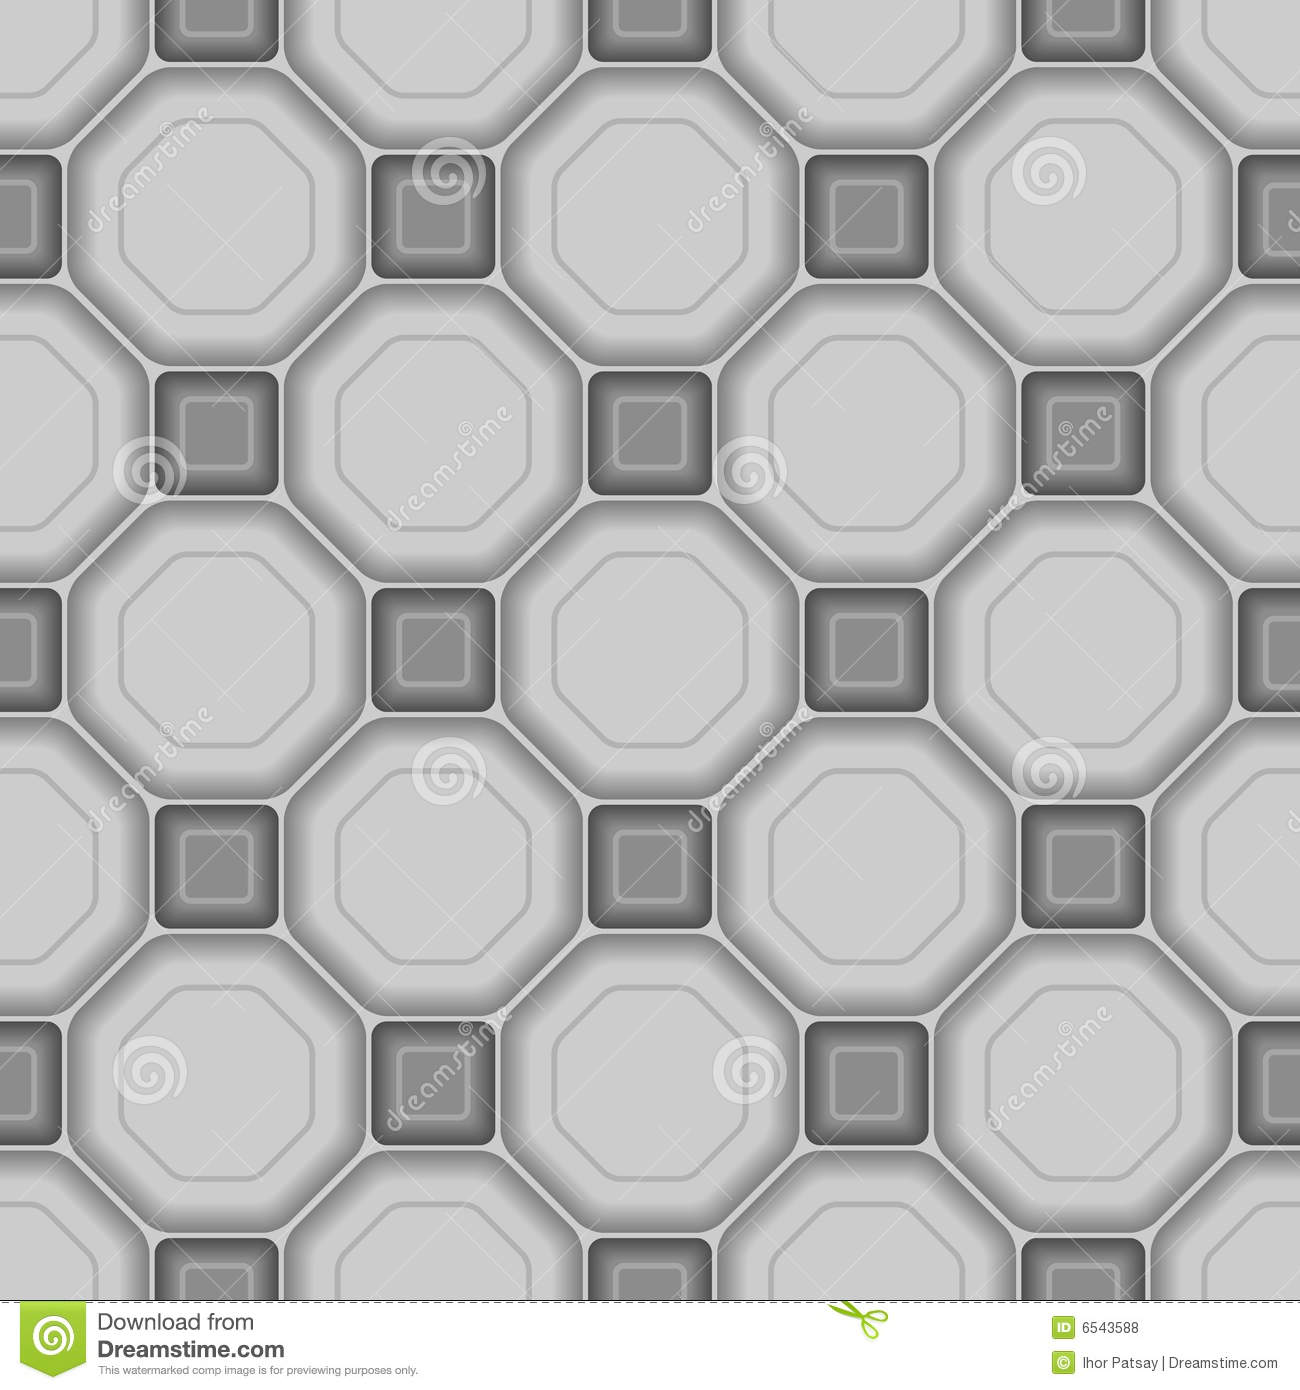 Seamless 3d tile pattern stock vector. Image of grid, image - 6543588